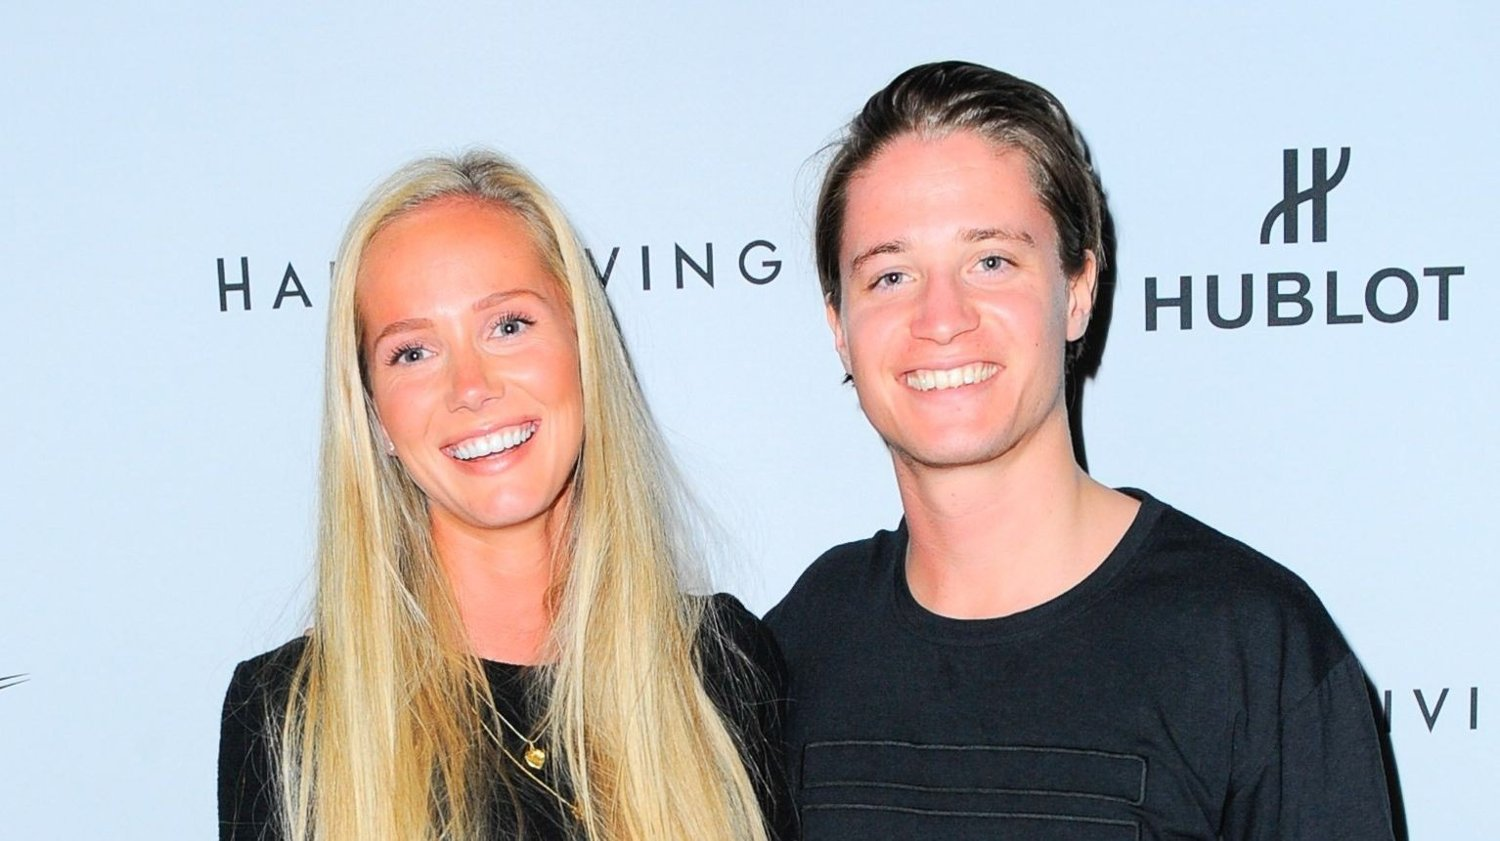 Avion Reserva 44 Celebrates Kygo's Haute Living Cover MIAMI, FLORIDA - MARCH 16: Maren Platou and DJ Kygo attend the Avion Reserva 44 Celebrates Kygo's Haute Living Cover at Komodo on March 16, 2016 in Miami, Florida. Sergi Alexander/Getty Images for Haute Living/AFP == FOR NEWSPAPERS, INTERNET, TELCOS & TELEVISION USE ONLY ==